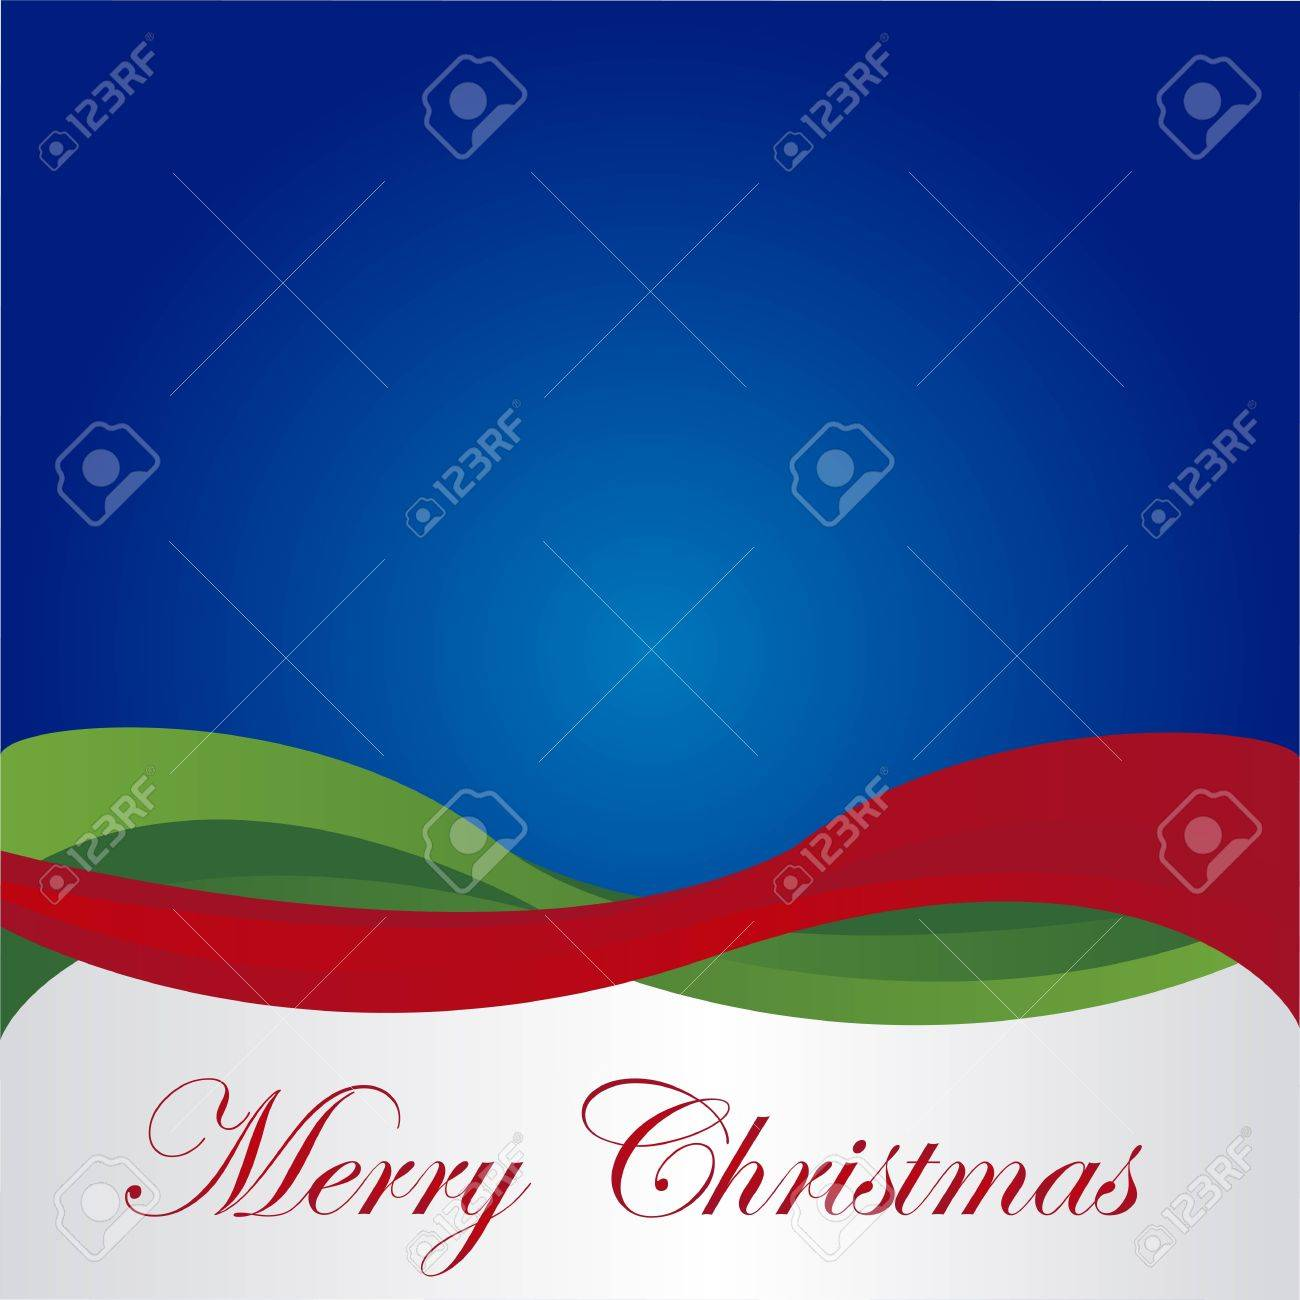 merry christmas over blue background. vector Stock Vector - 10947207